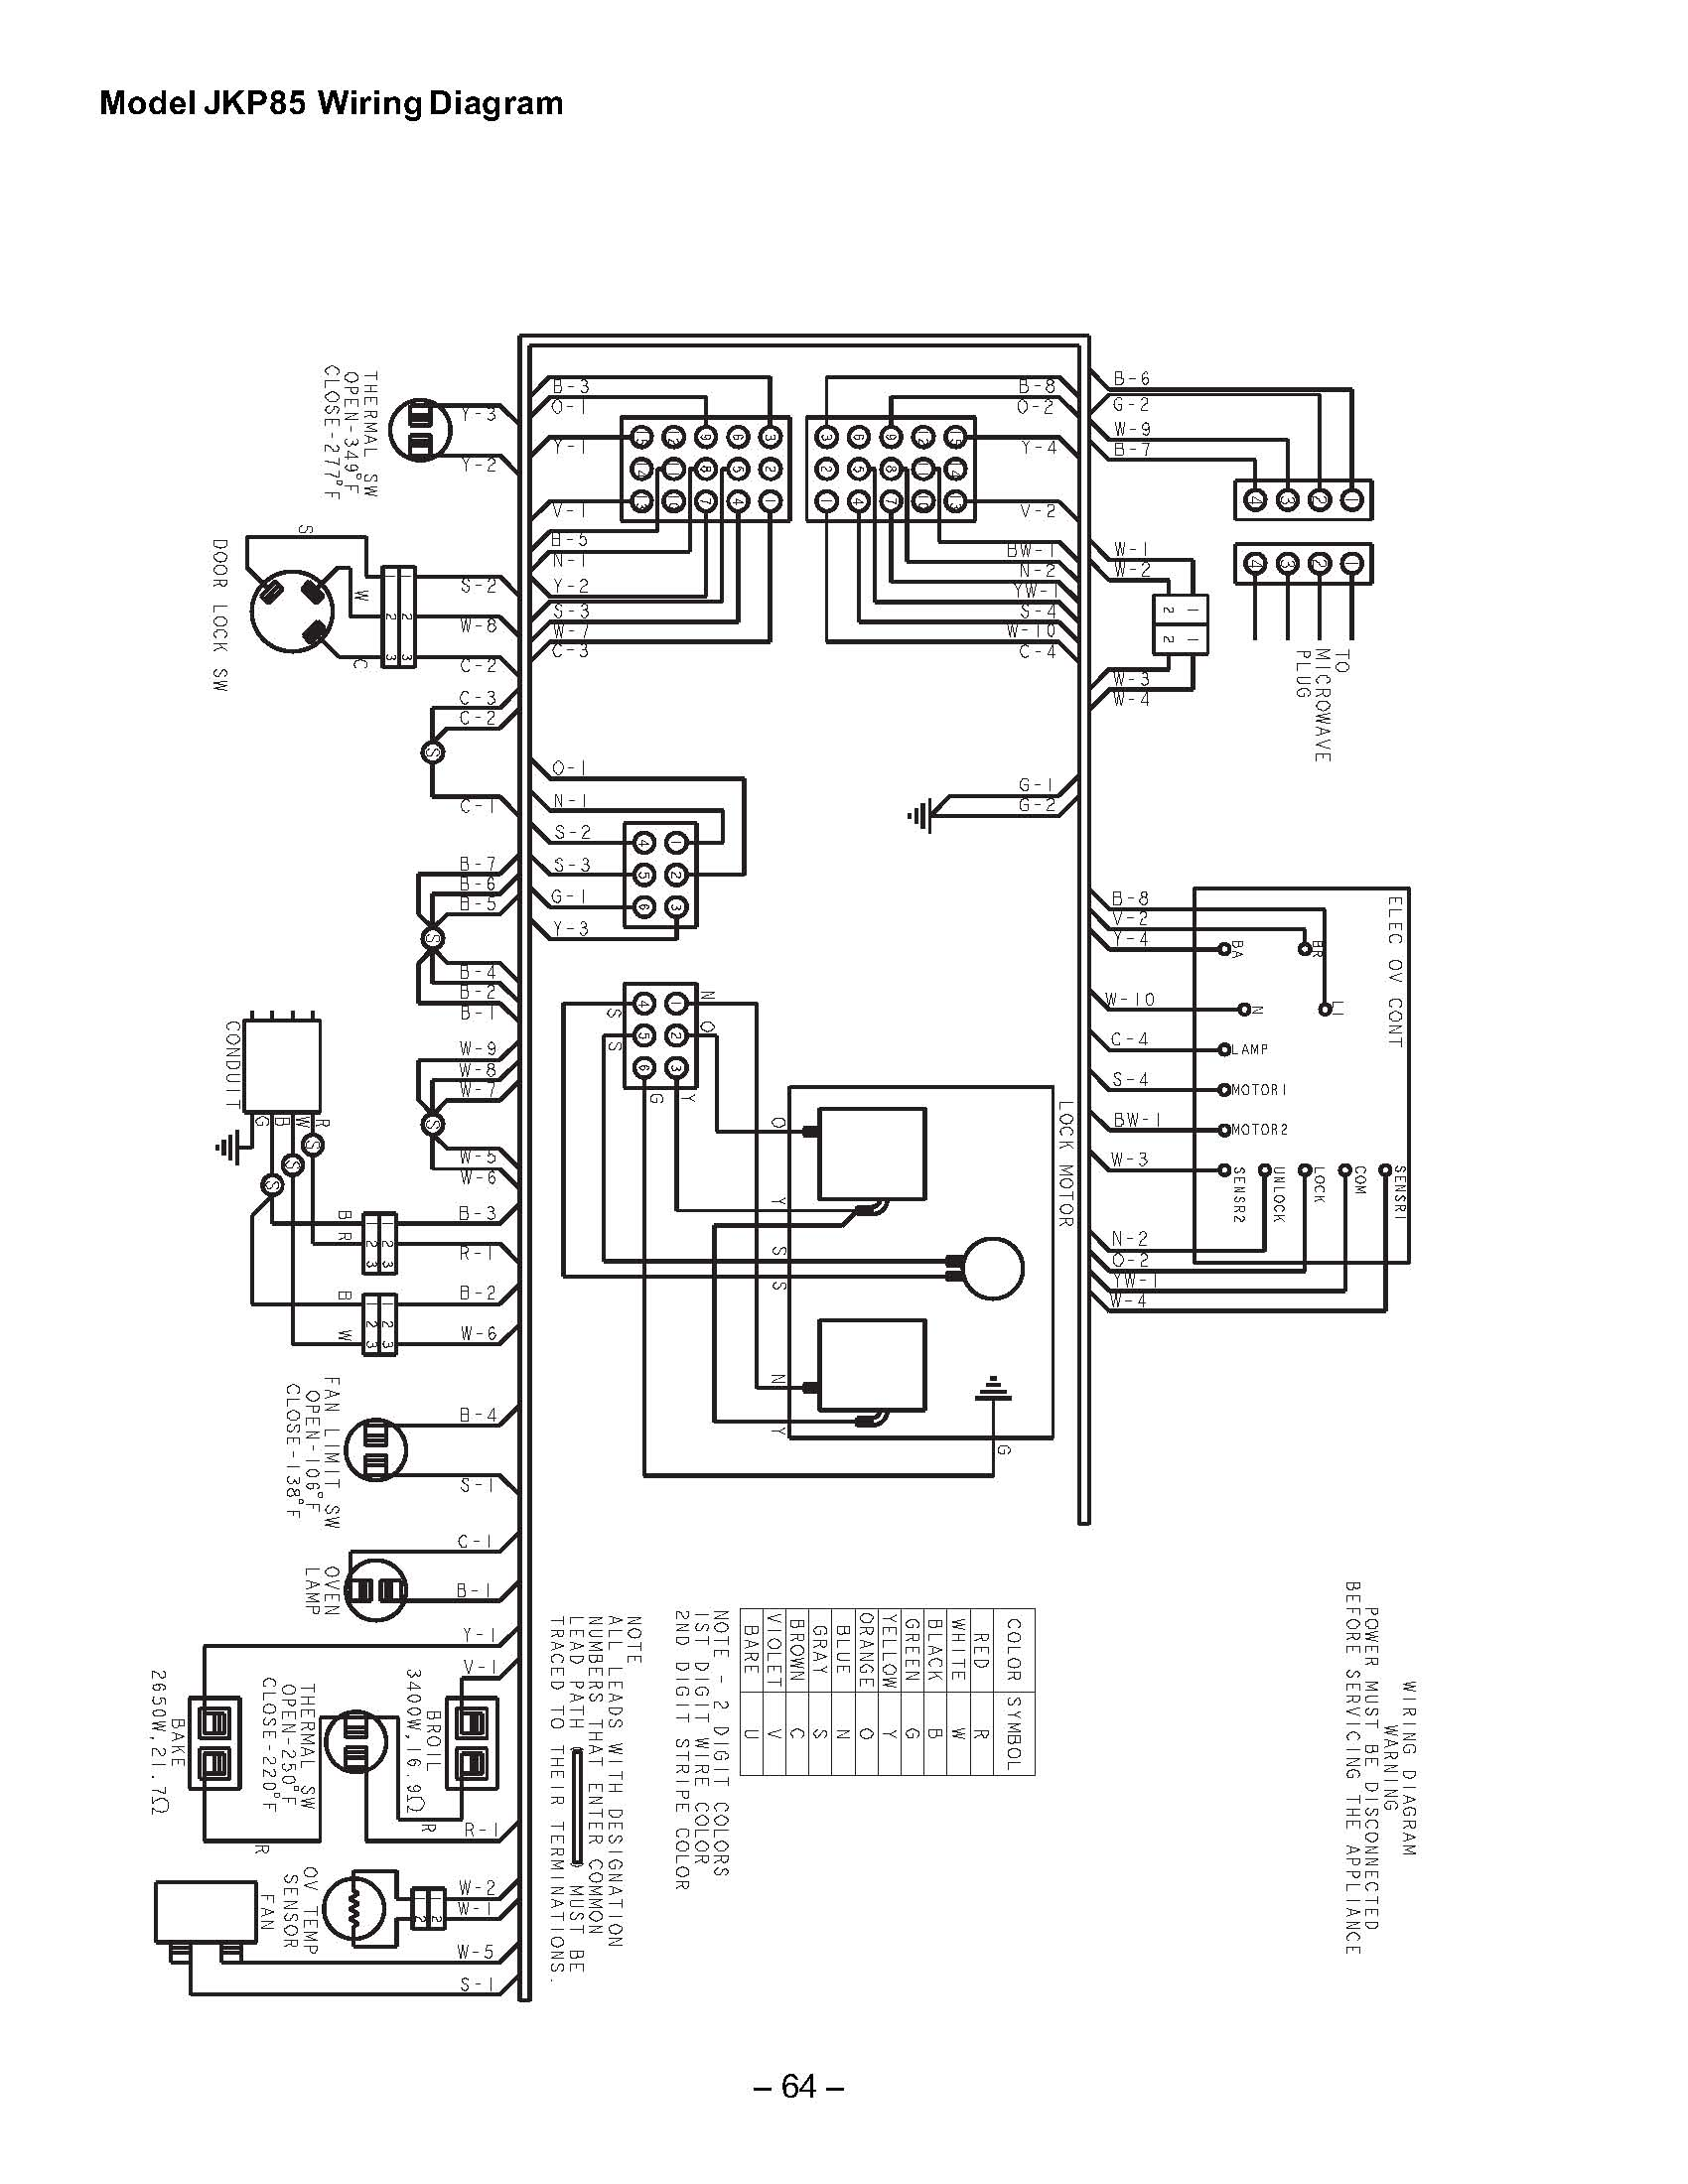 2011 04 22_120234_c_wiring_diagra__jkp90sm2ss_wall_oven?quality\\\\\\\=80\\\\\\\&strip\\\\\\\=all besam sl500 wiring diagram wiring diagram images besam sw200i wiring diagram at fashall.co